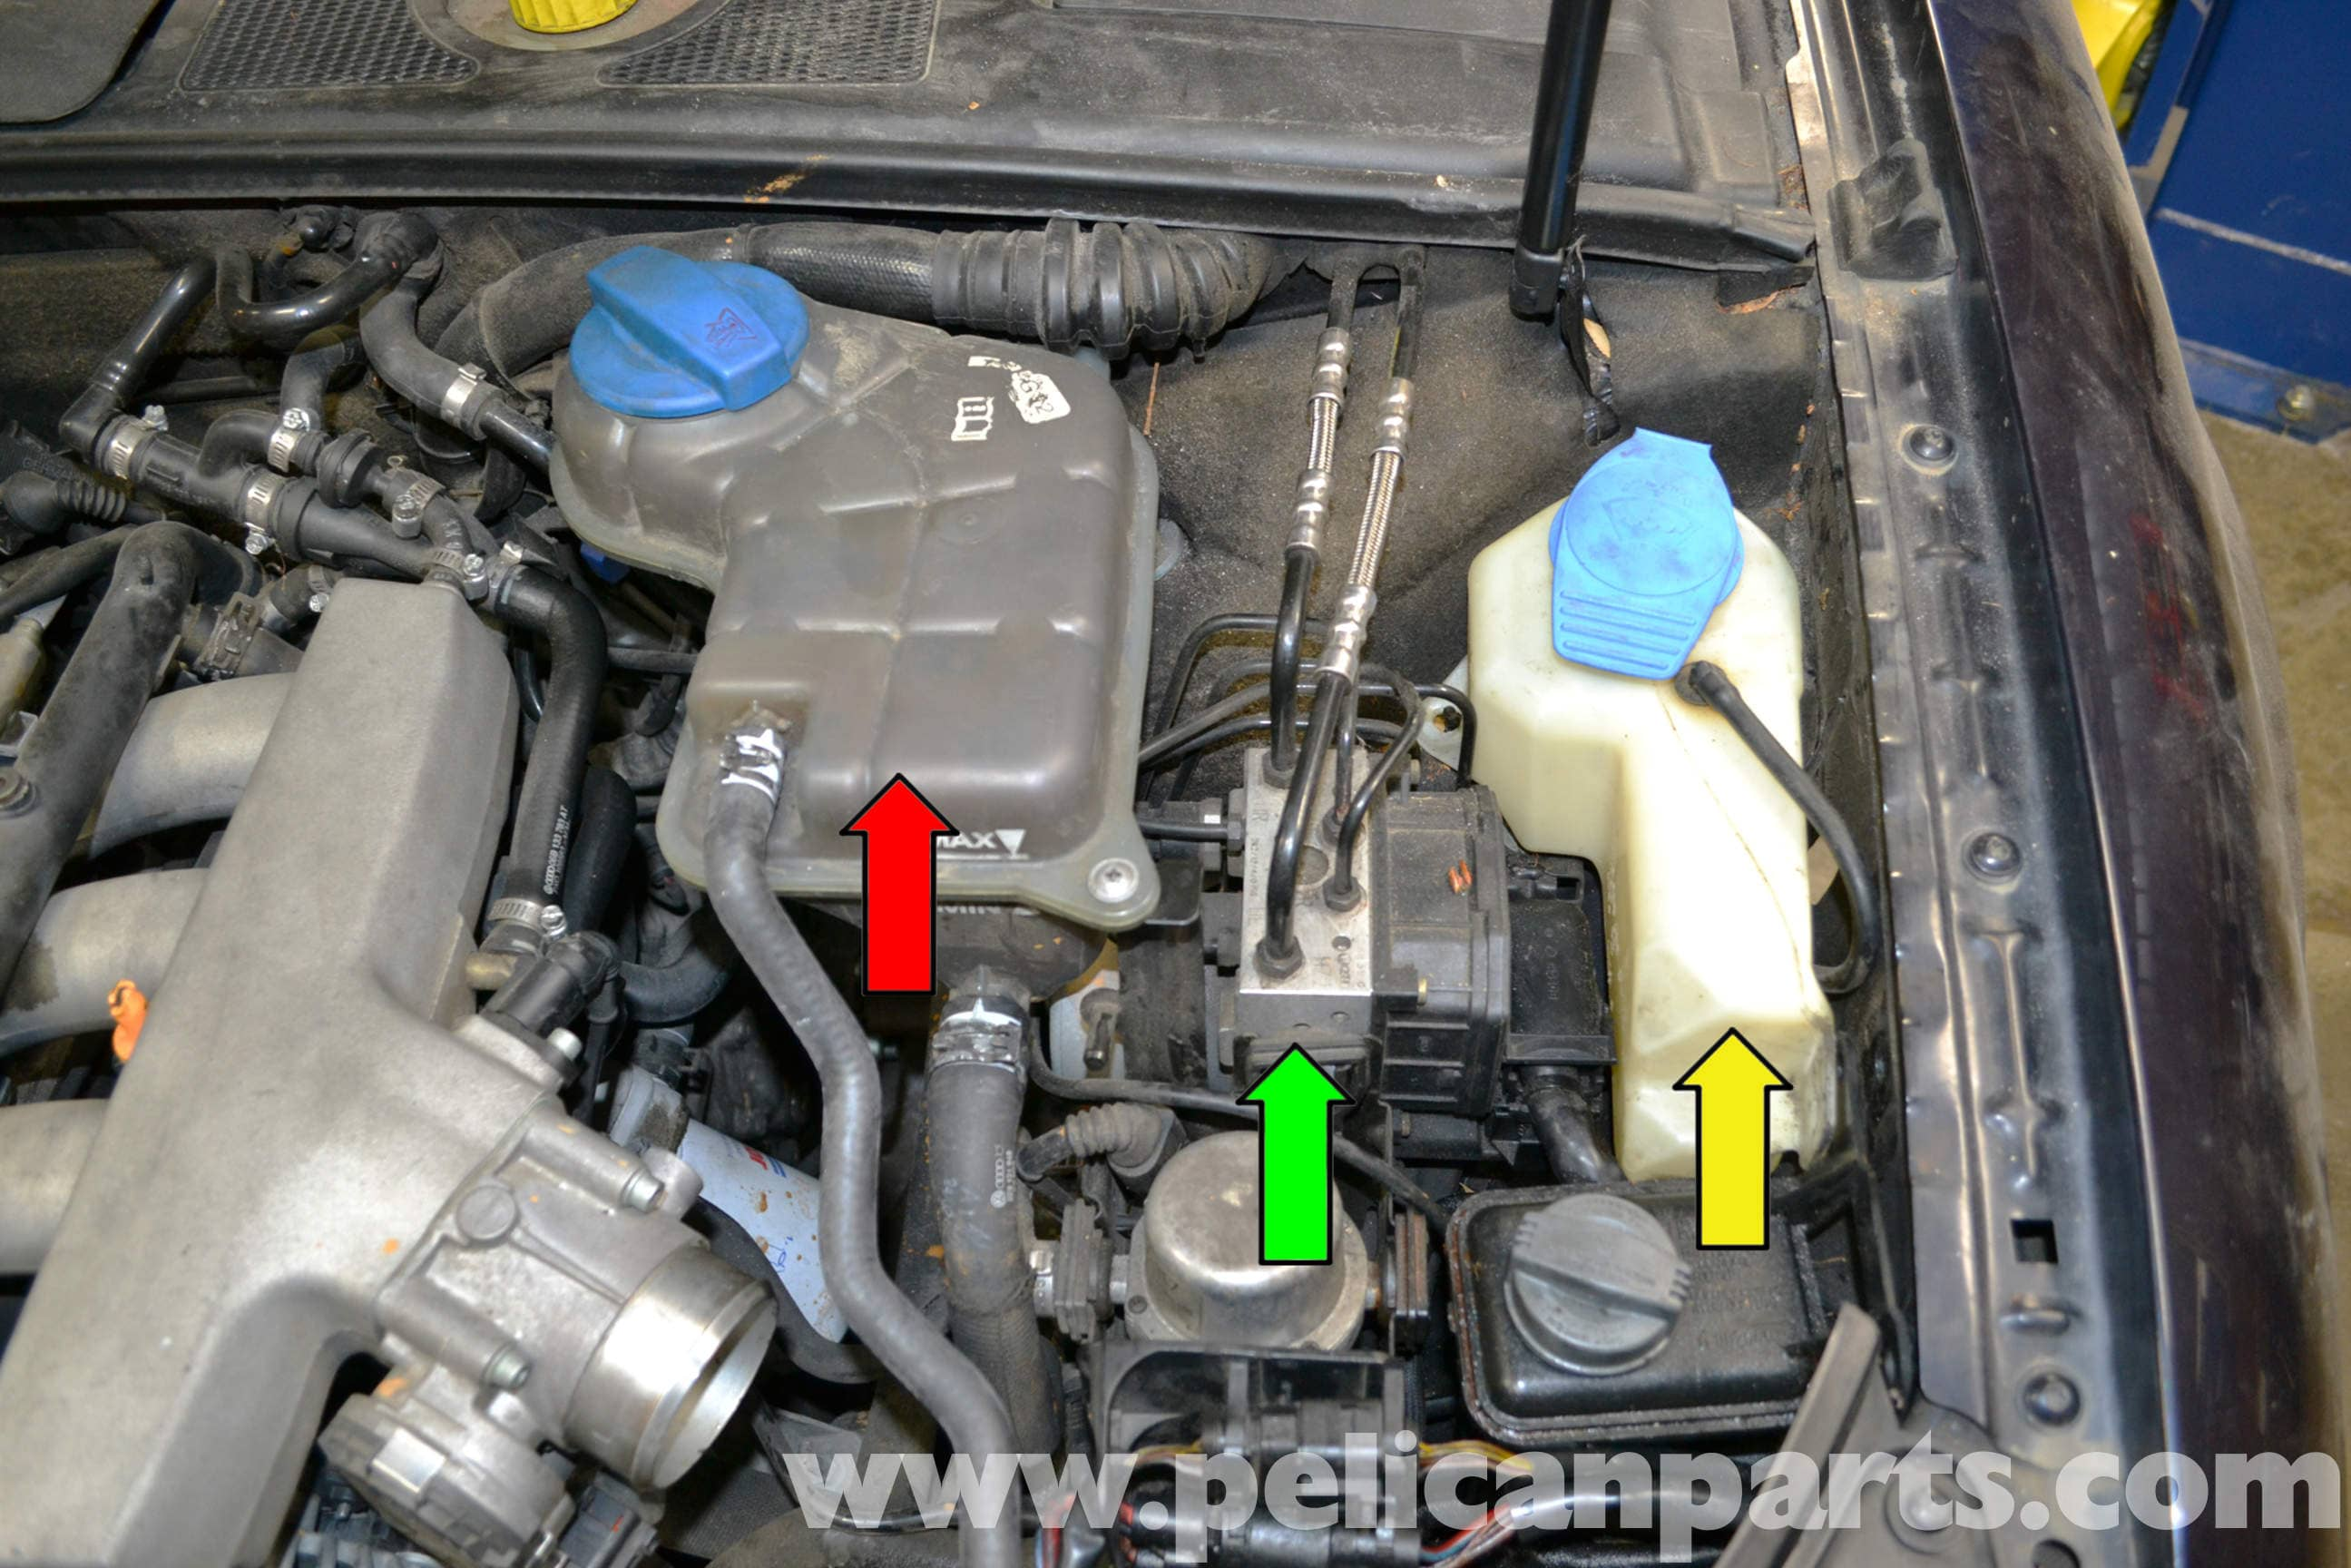 1998 A4 1 8t Dreaded Airbag Light 70629 further Audi Quattro Engine Diagram as well Peugeot 206 2003 2010 Fuse Box Diagram additionally Watch additionally KiEPIG. on 2001 audi tt wiring diagram